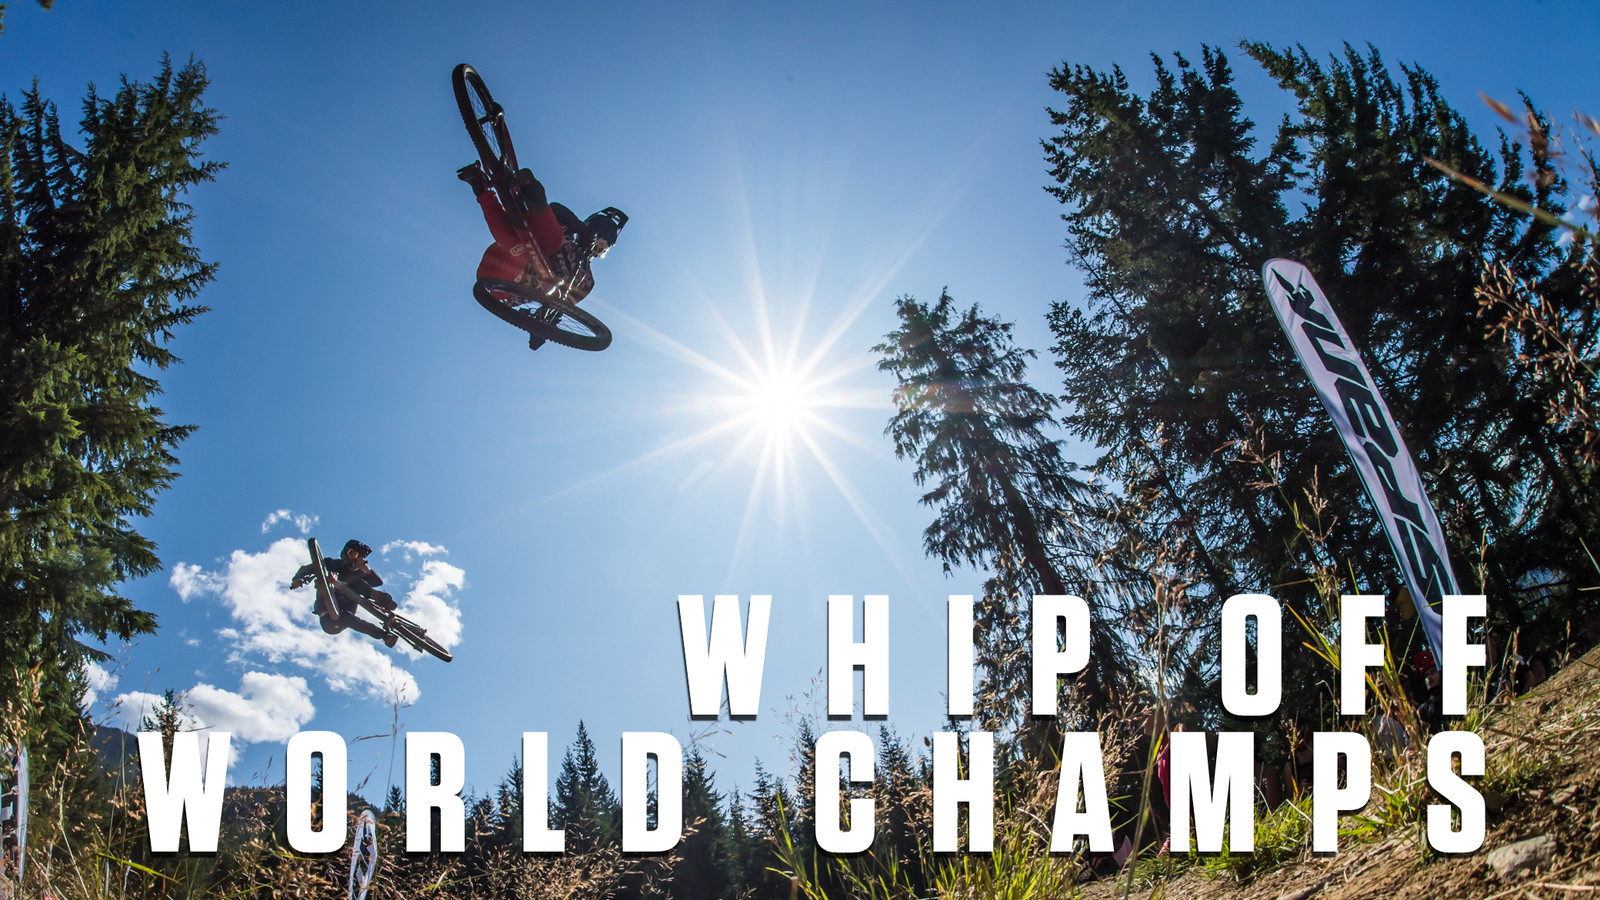 2019 Whip-Off World Champs Crankworx Whistler - 2019 Whip-Off World Champs Crankworx Whistler - Mountain Biking Pictures - Vital MTB